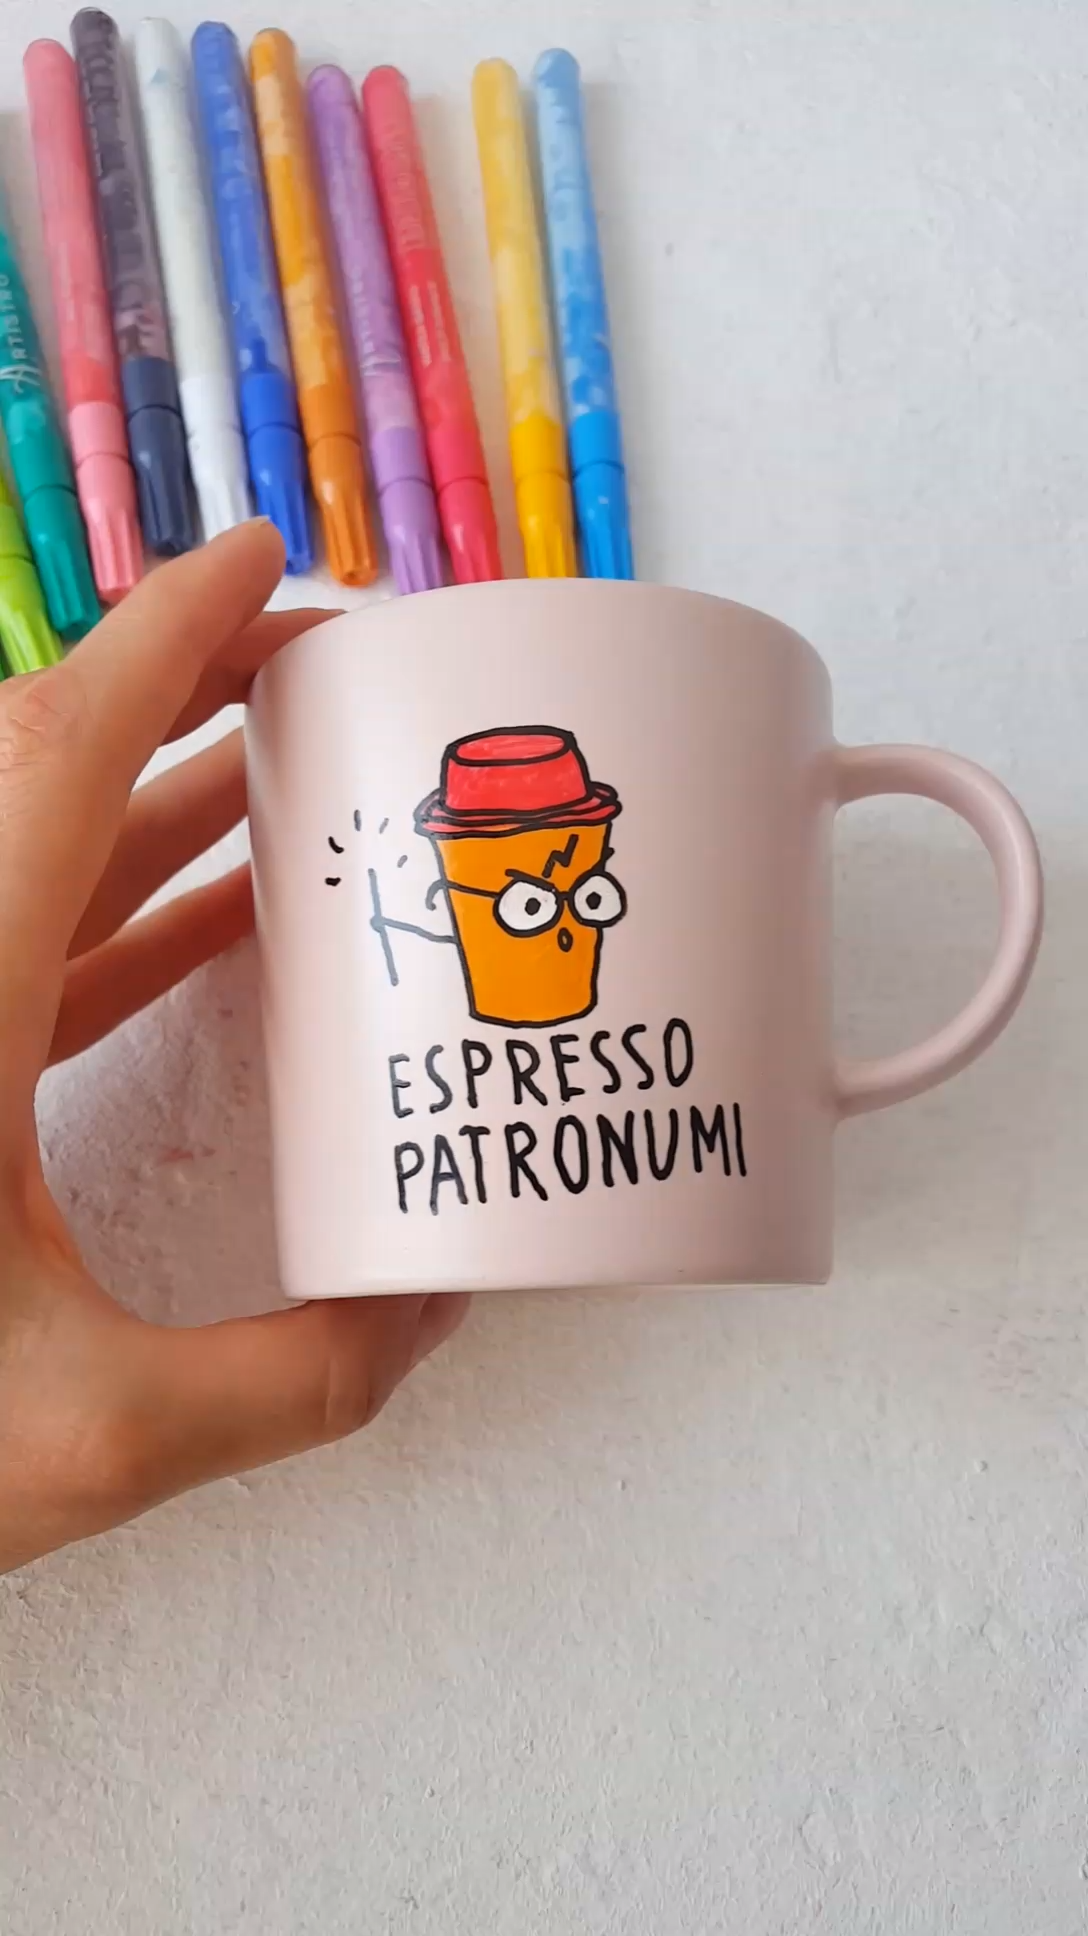 Harry Potter Inspired Mug Design Hand Painted With Artistro Acrylic Markers Paint Pens Funny Cup Design Funny Mug Design Ideas Perfe Video